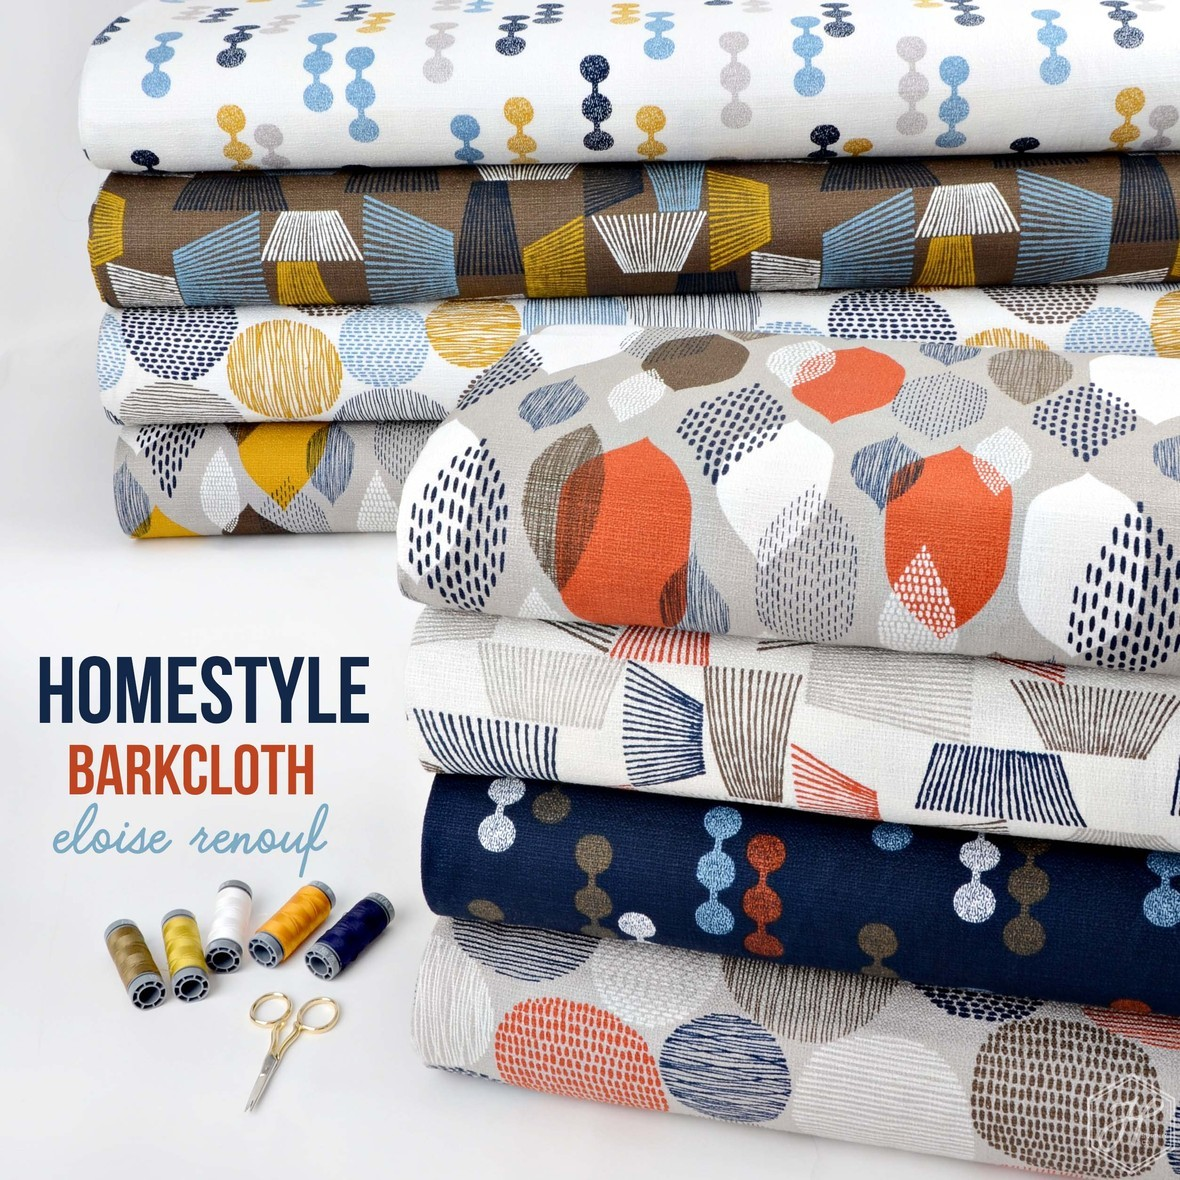 Homestyle Barkcloth Fabric Poster Cloud 9 at Hawthorne Supply Co